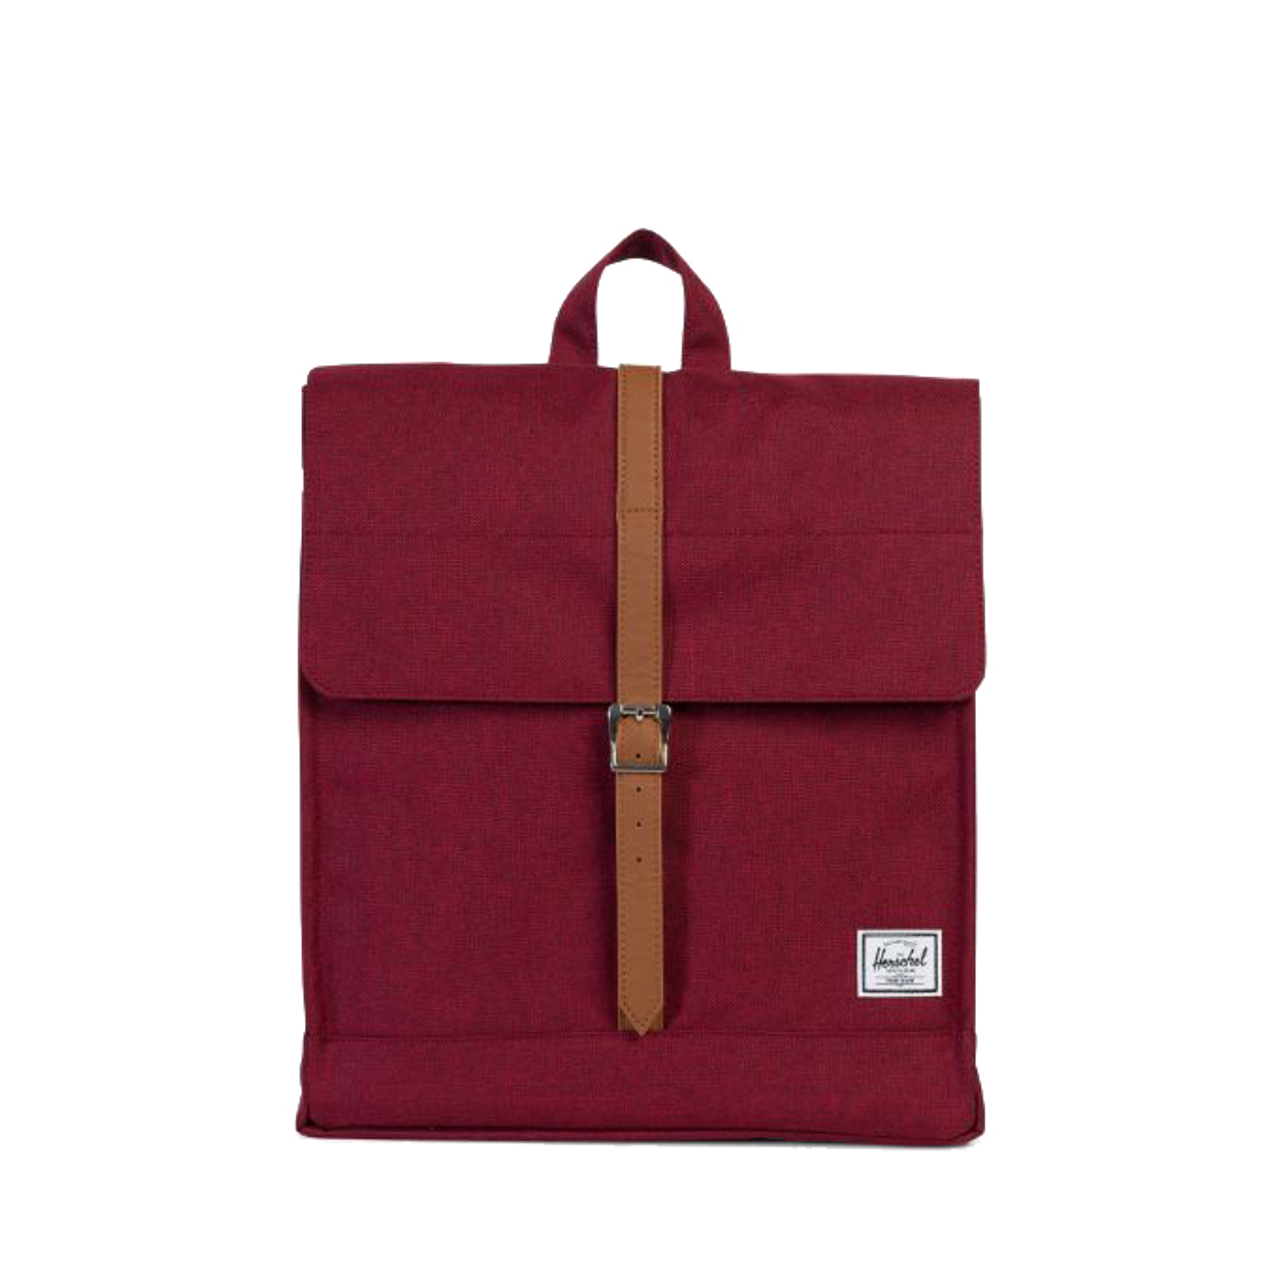 Herschel City Backpack Mid-Volume in Wine - Gear West Ski and Run 3317769d45b80